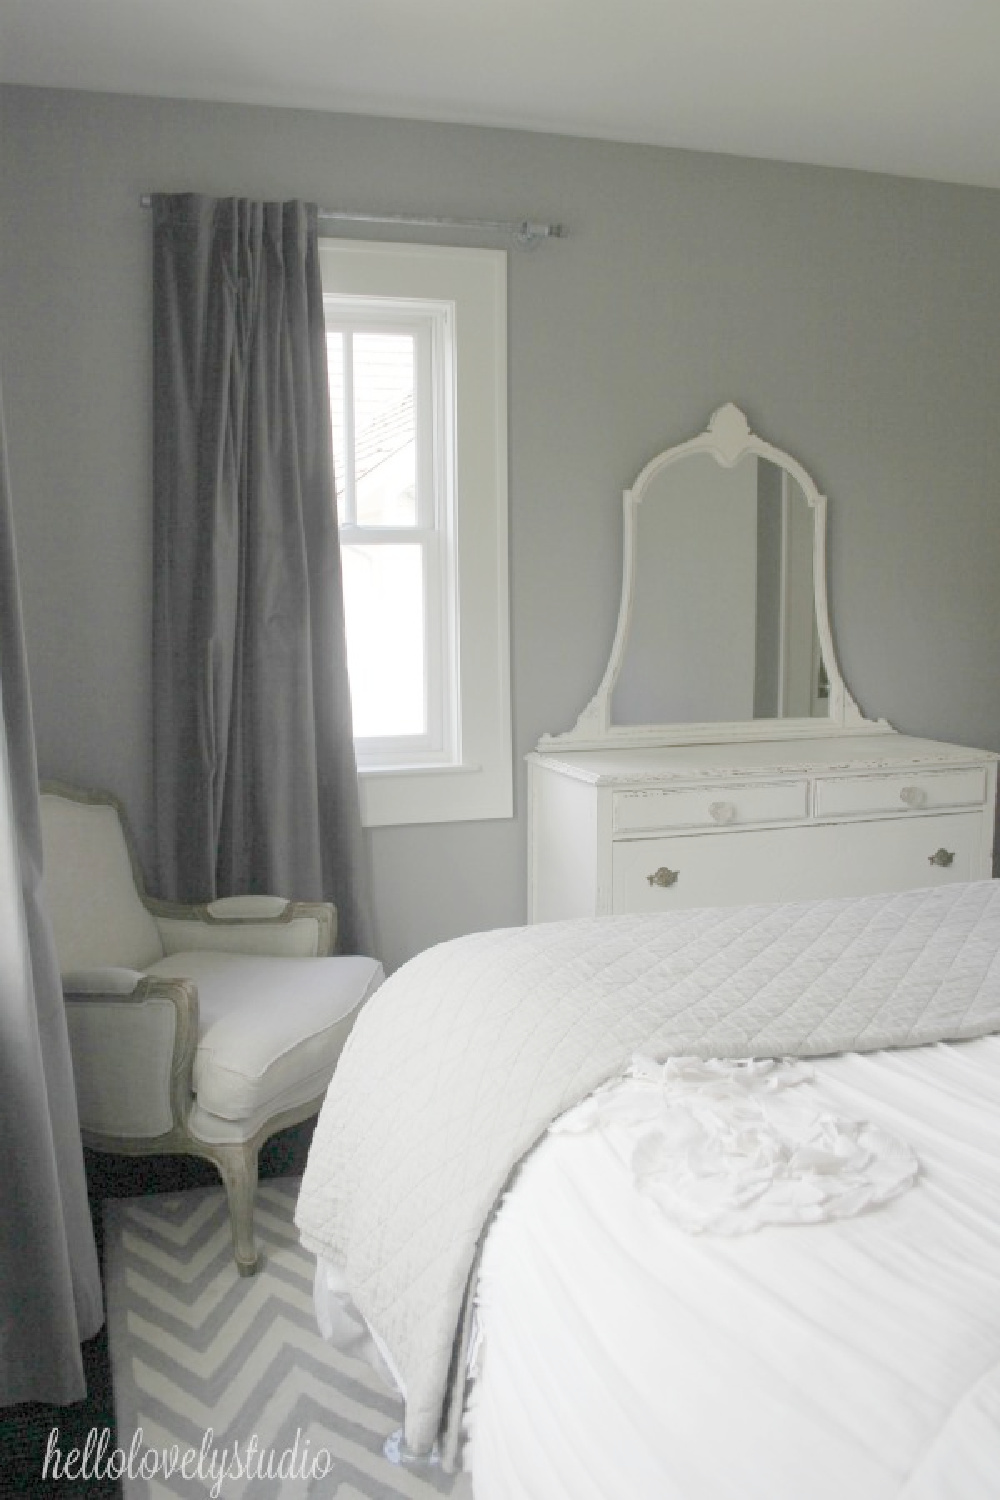 Platinum Gray (Benjamin Moore) paint color in a lovely romantic French country bedroom with white bedding and furniture. #hellolovelystudio #platinumgray #graypaintcolors